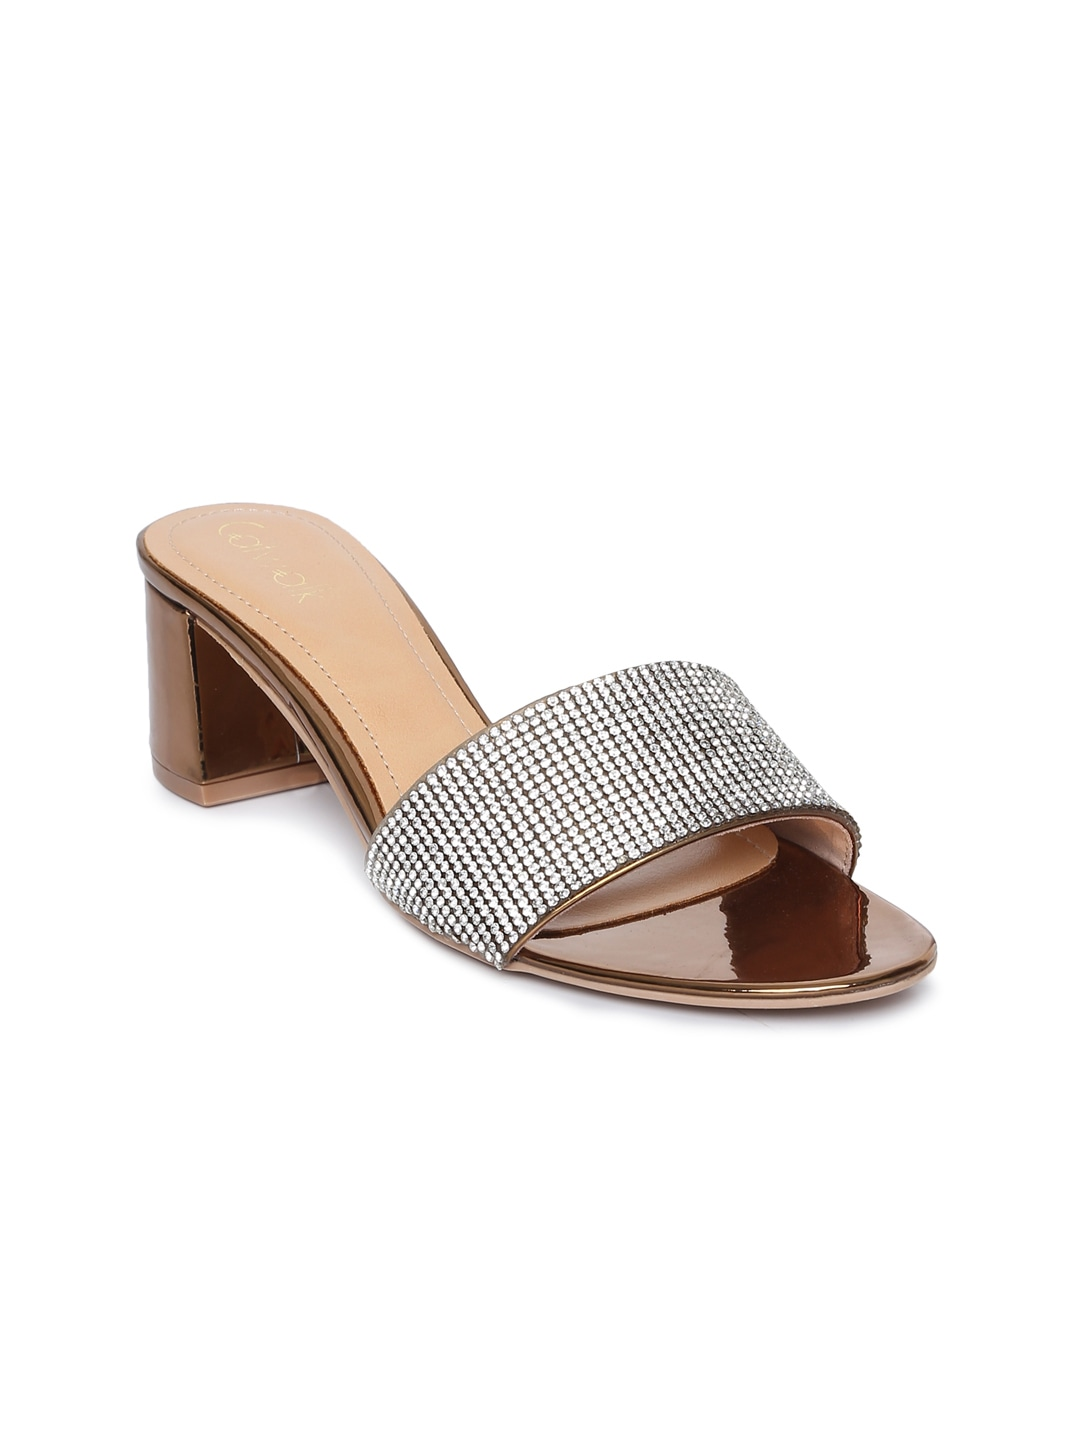 Silver-Toned Open Toe Sandals